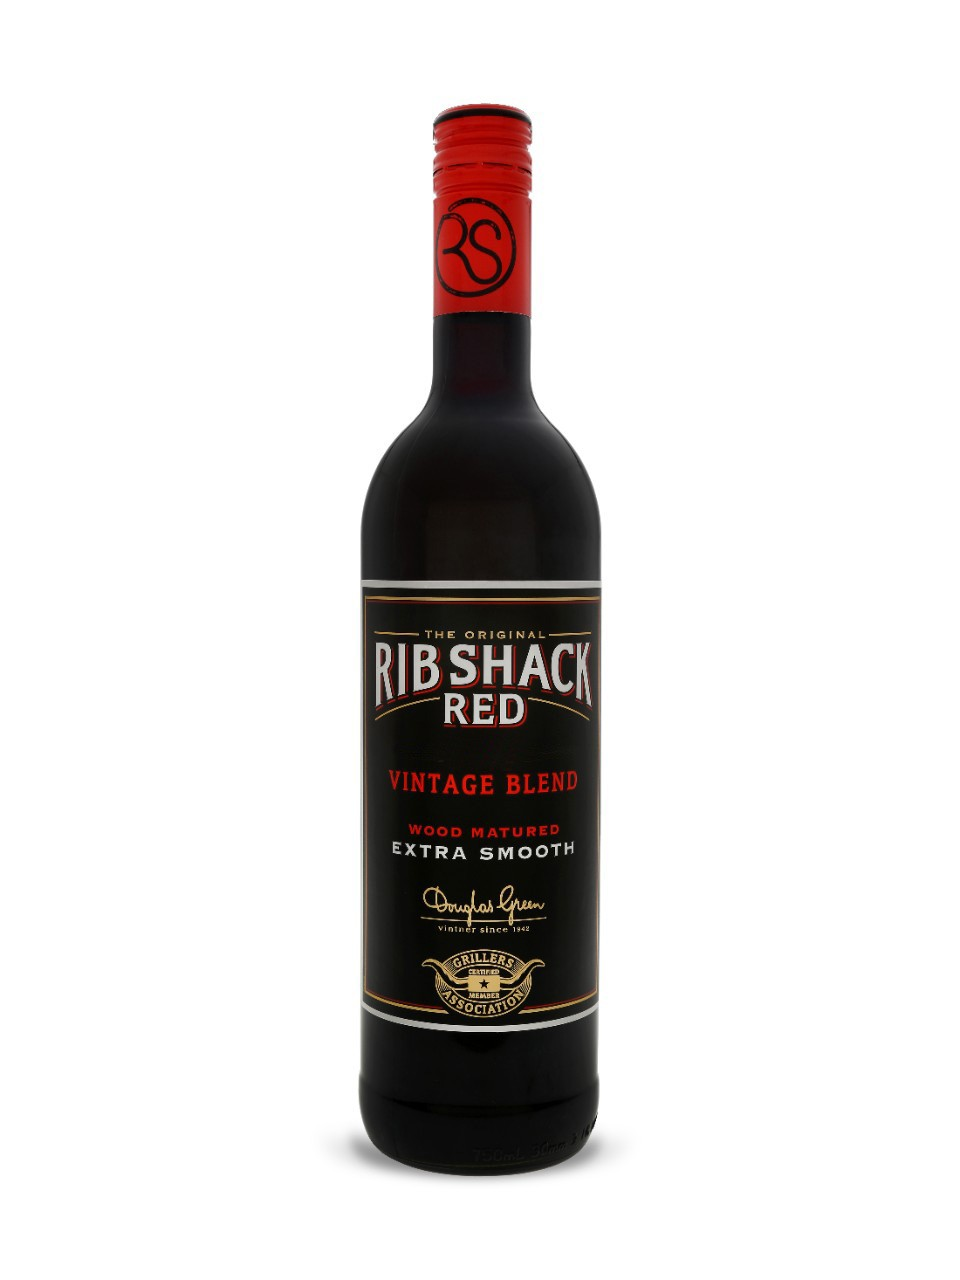 Rib Shack Red Vintage Blend